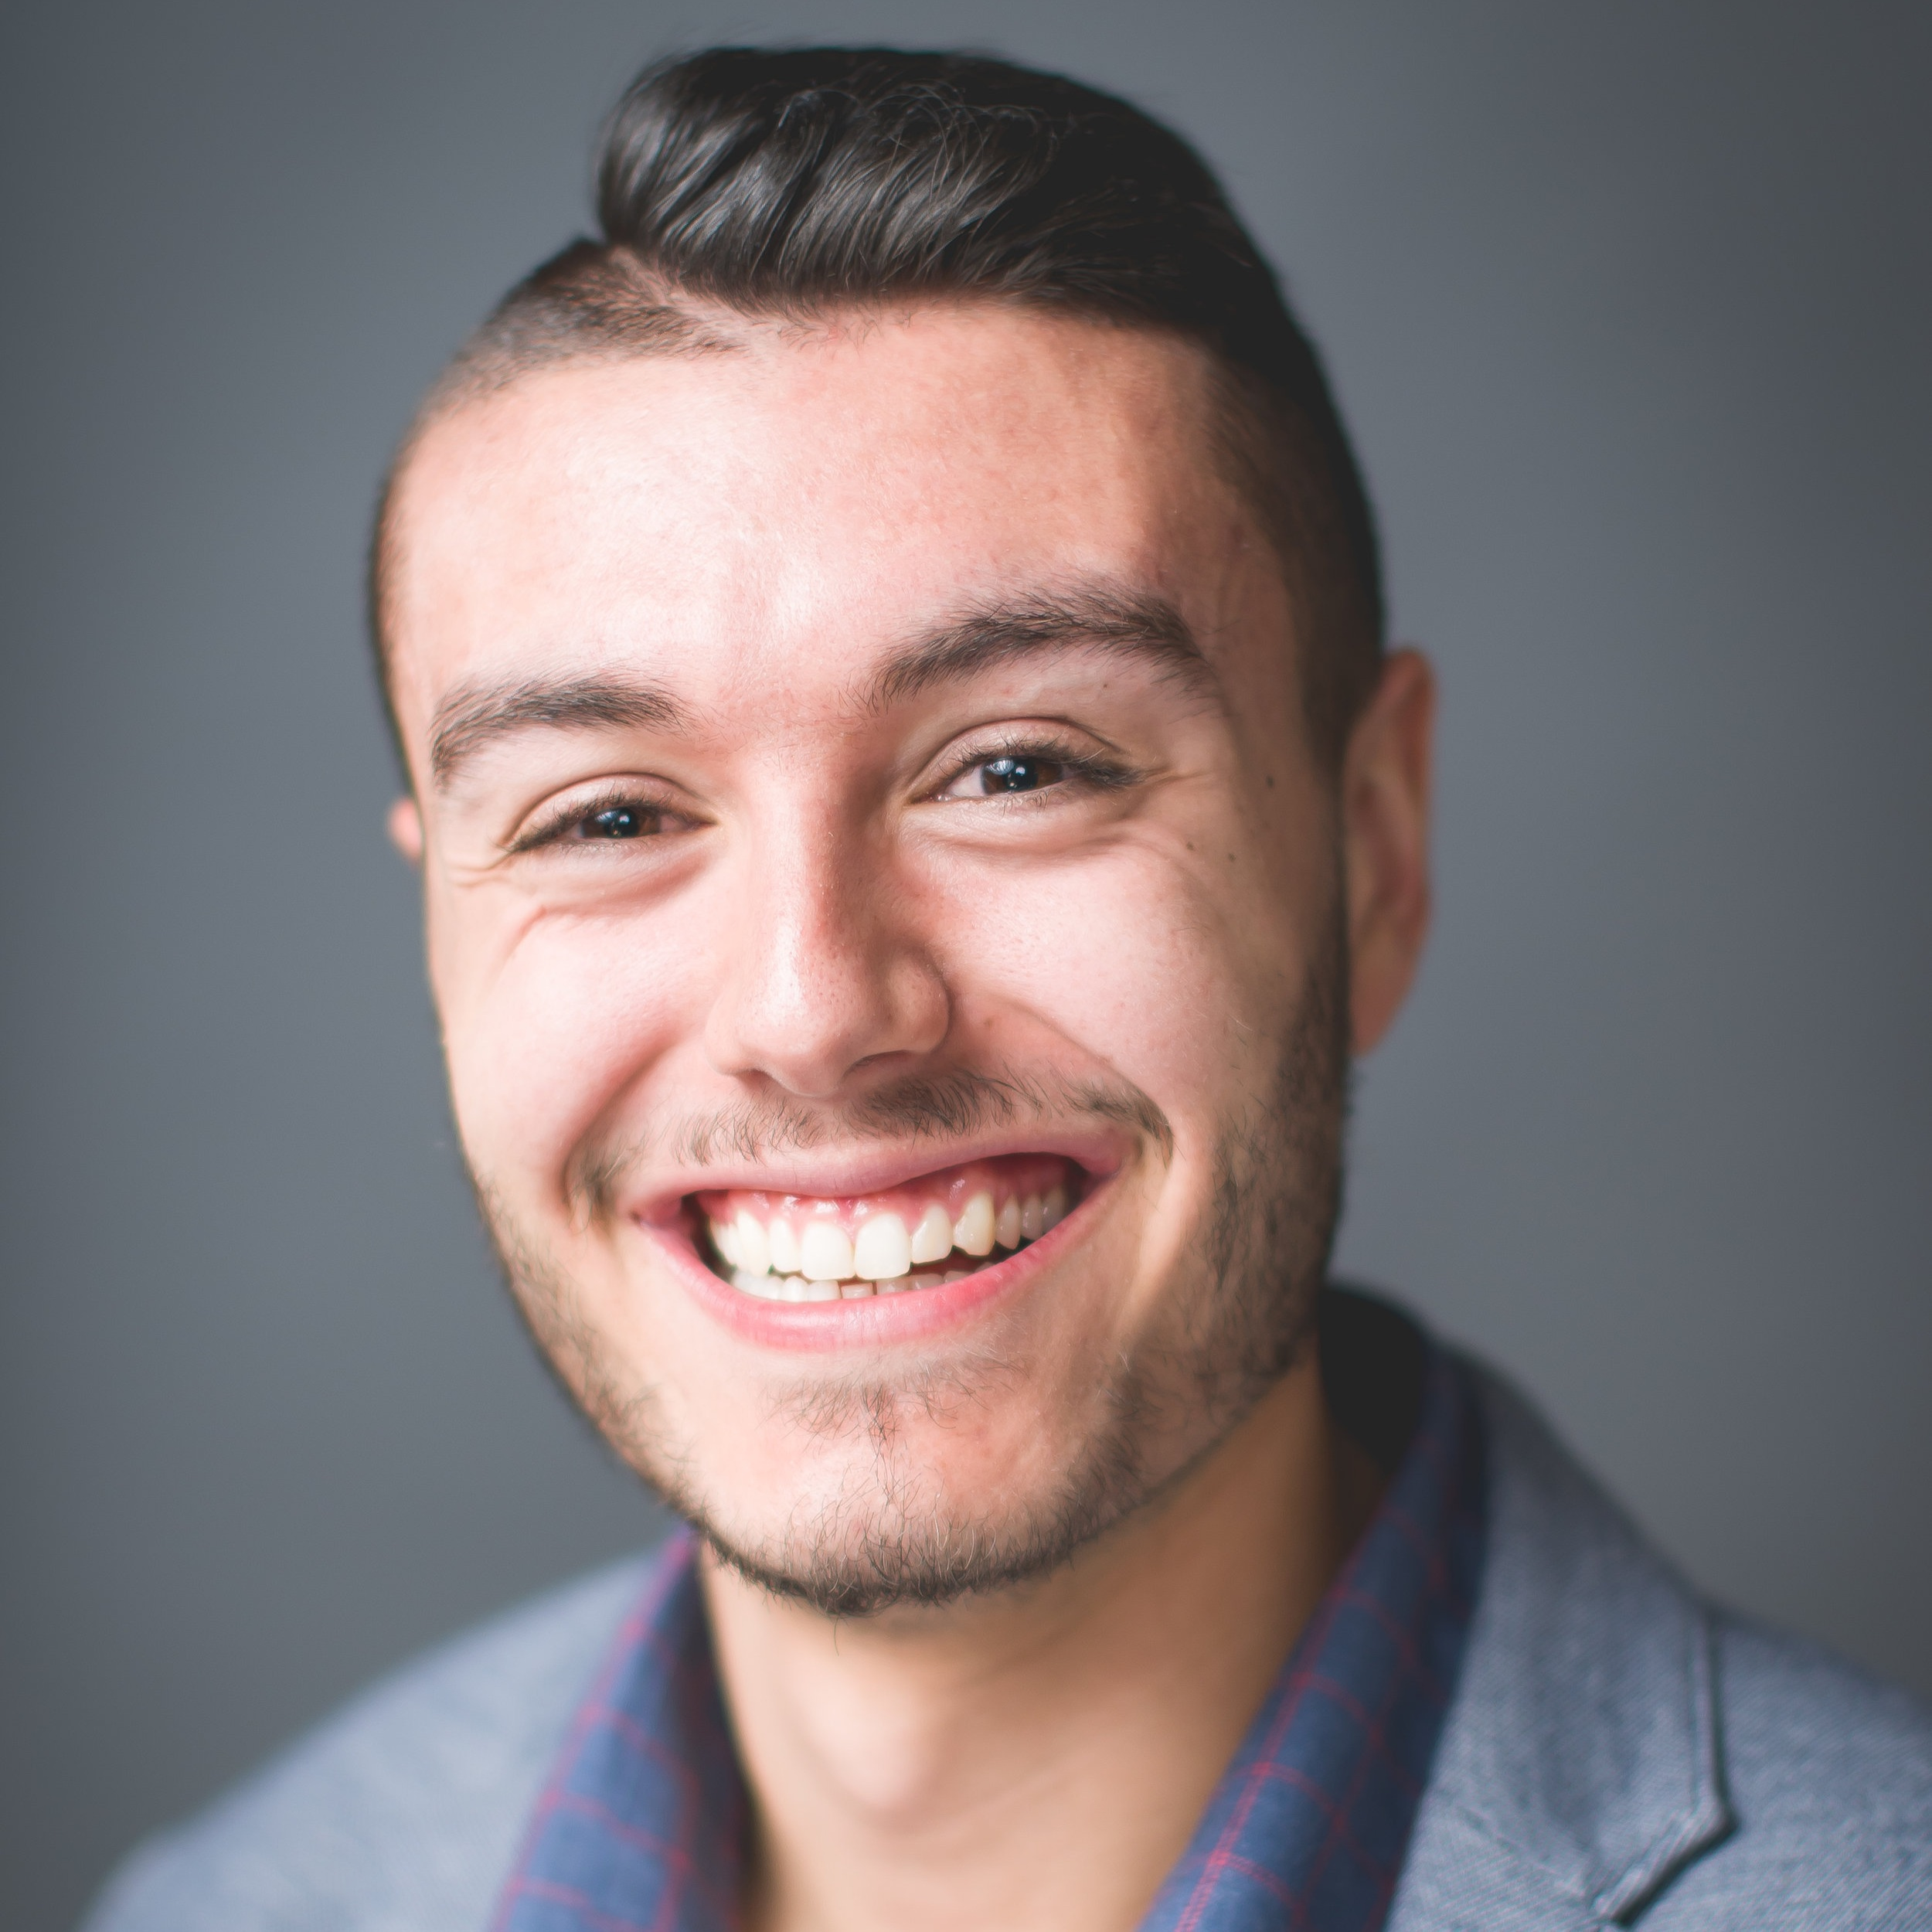 2019 Monzón Fellow  Randy Perez is a campaign consultant and strategist who understands the importance of building long-term power in our communities.